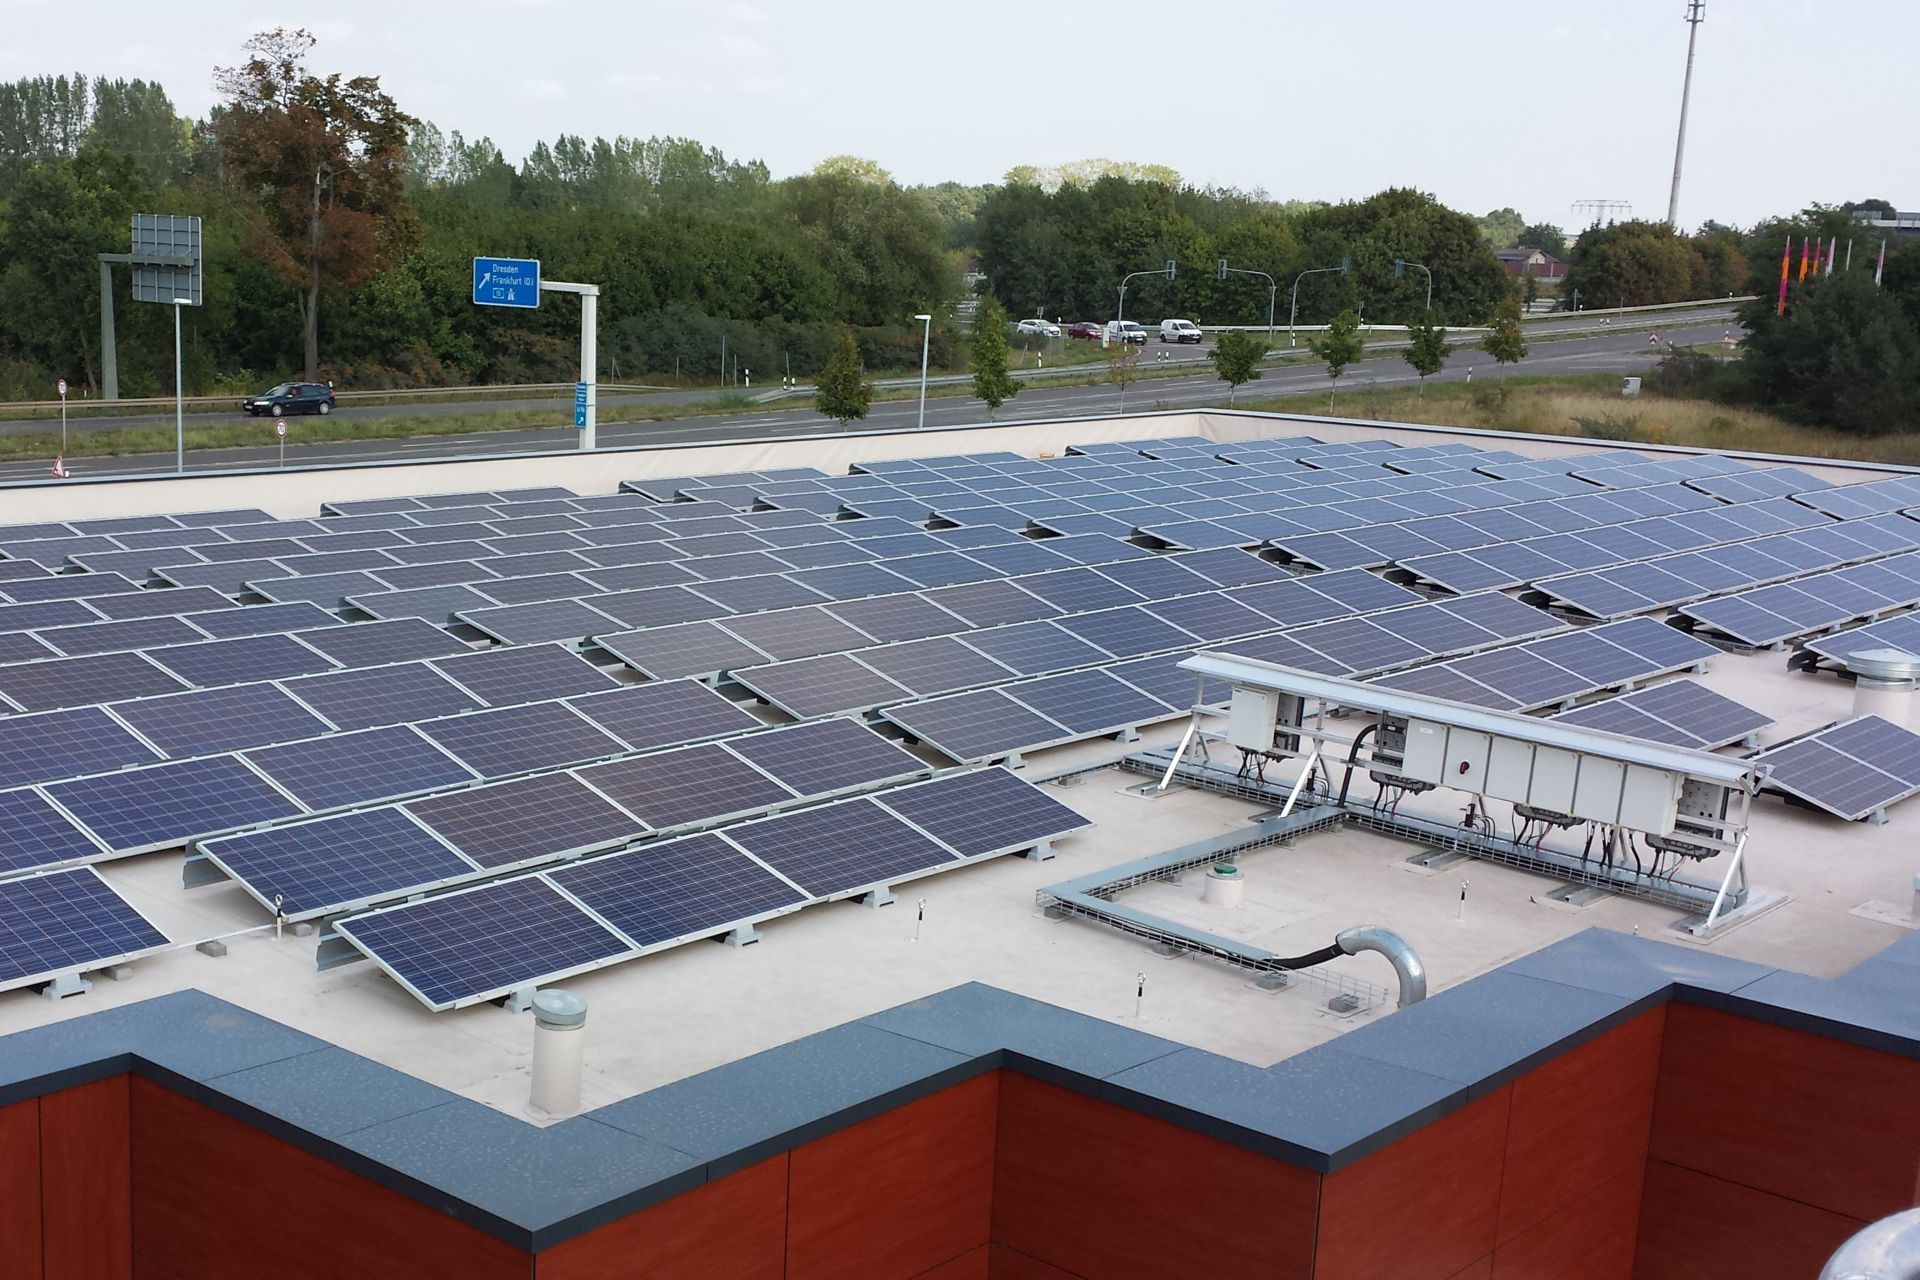 Sika SolarMount-1 on solar roof installed in south configuration in Fredersdorf, Germany